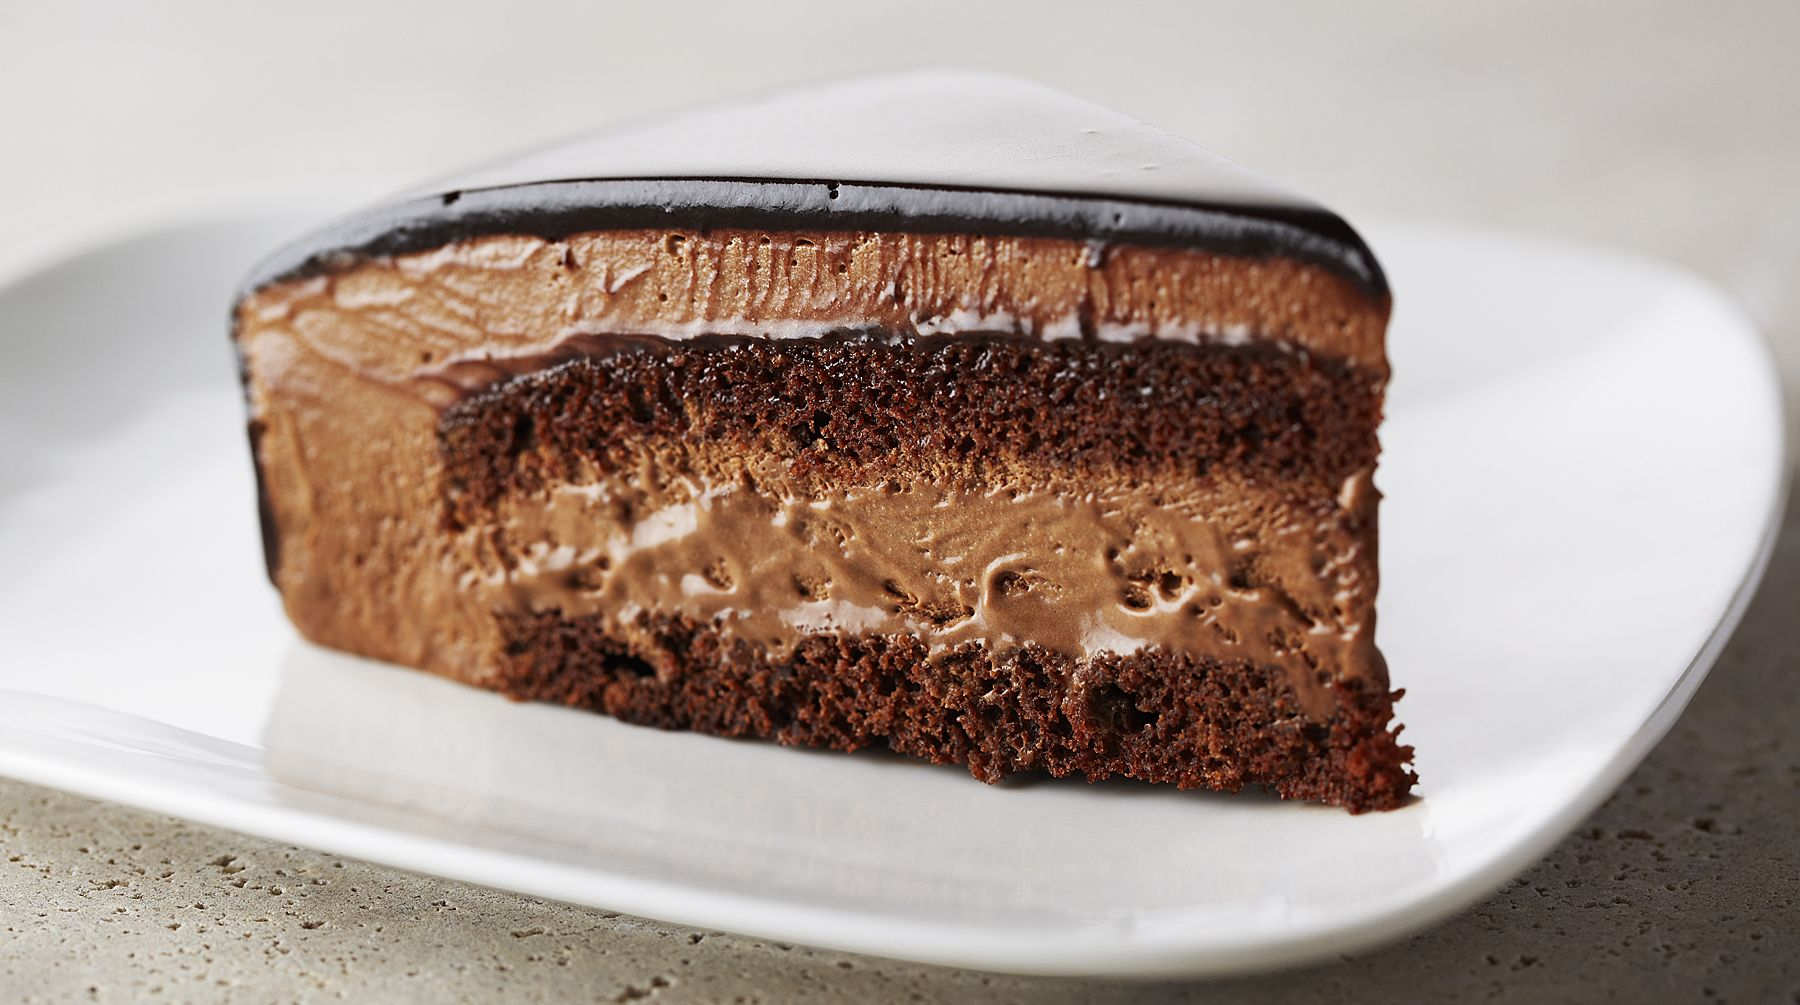 Bake with anna olson recipes rich chocolate mousse cake asian bake with anna olson recipes rich chocolate mousse cake asian food channel forumfinder Gallery